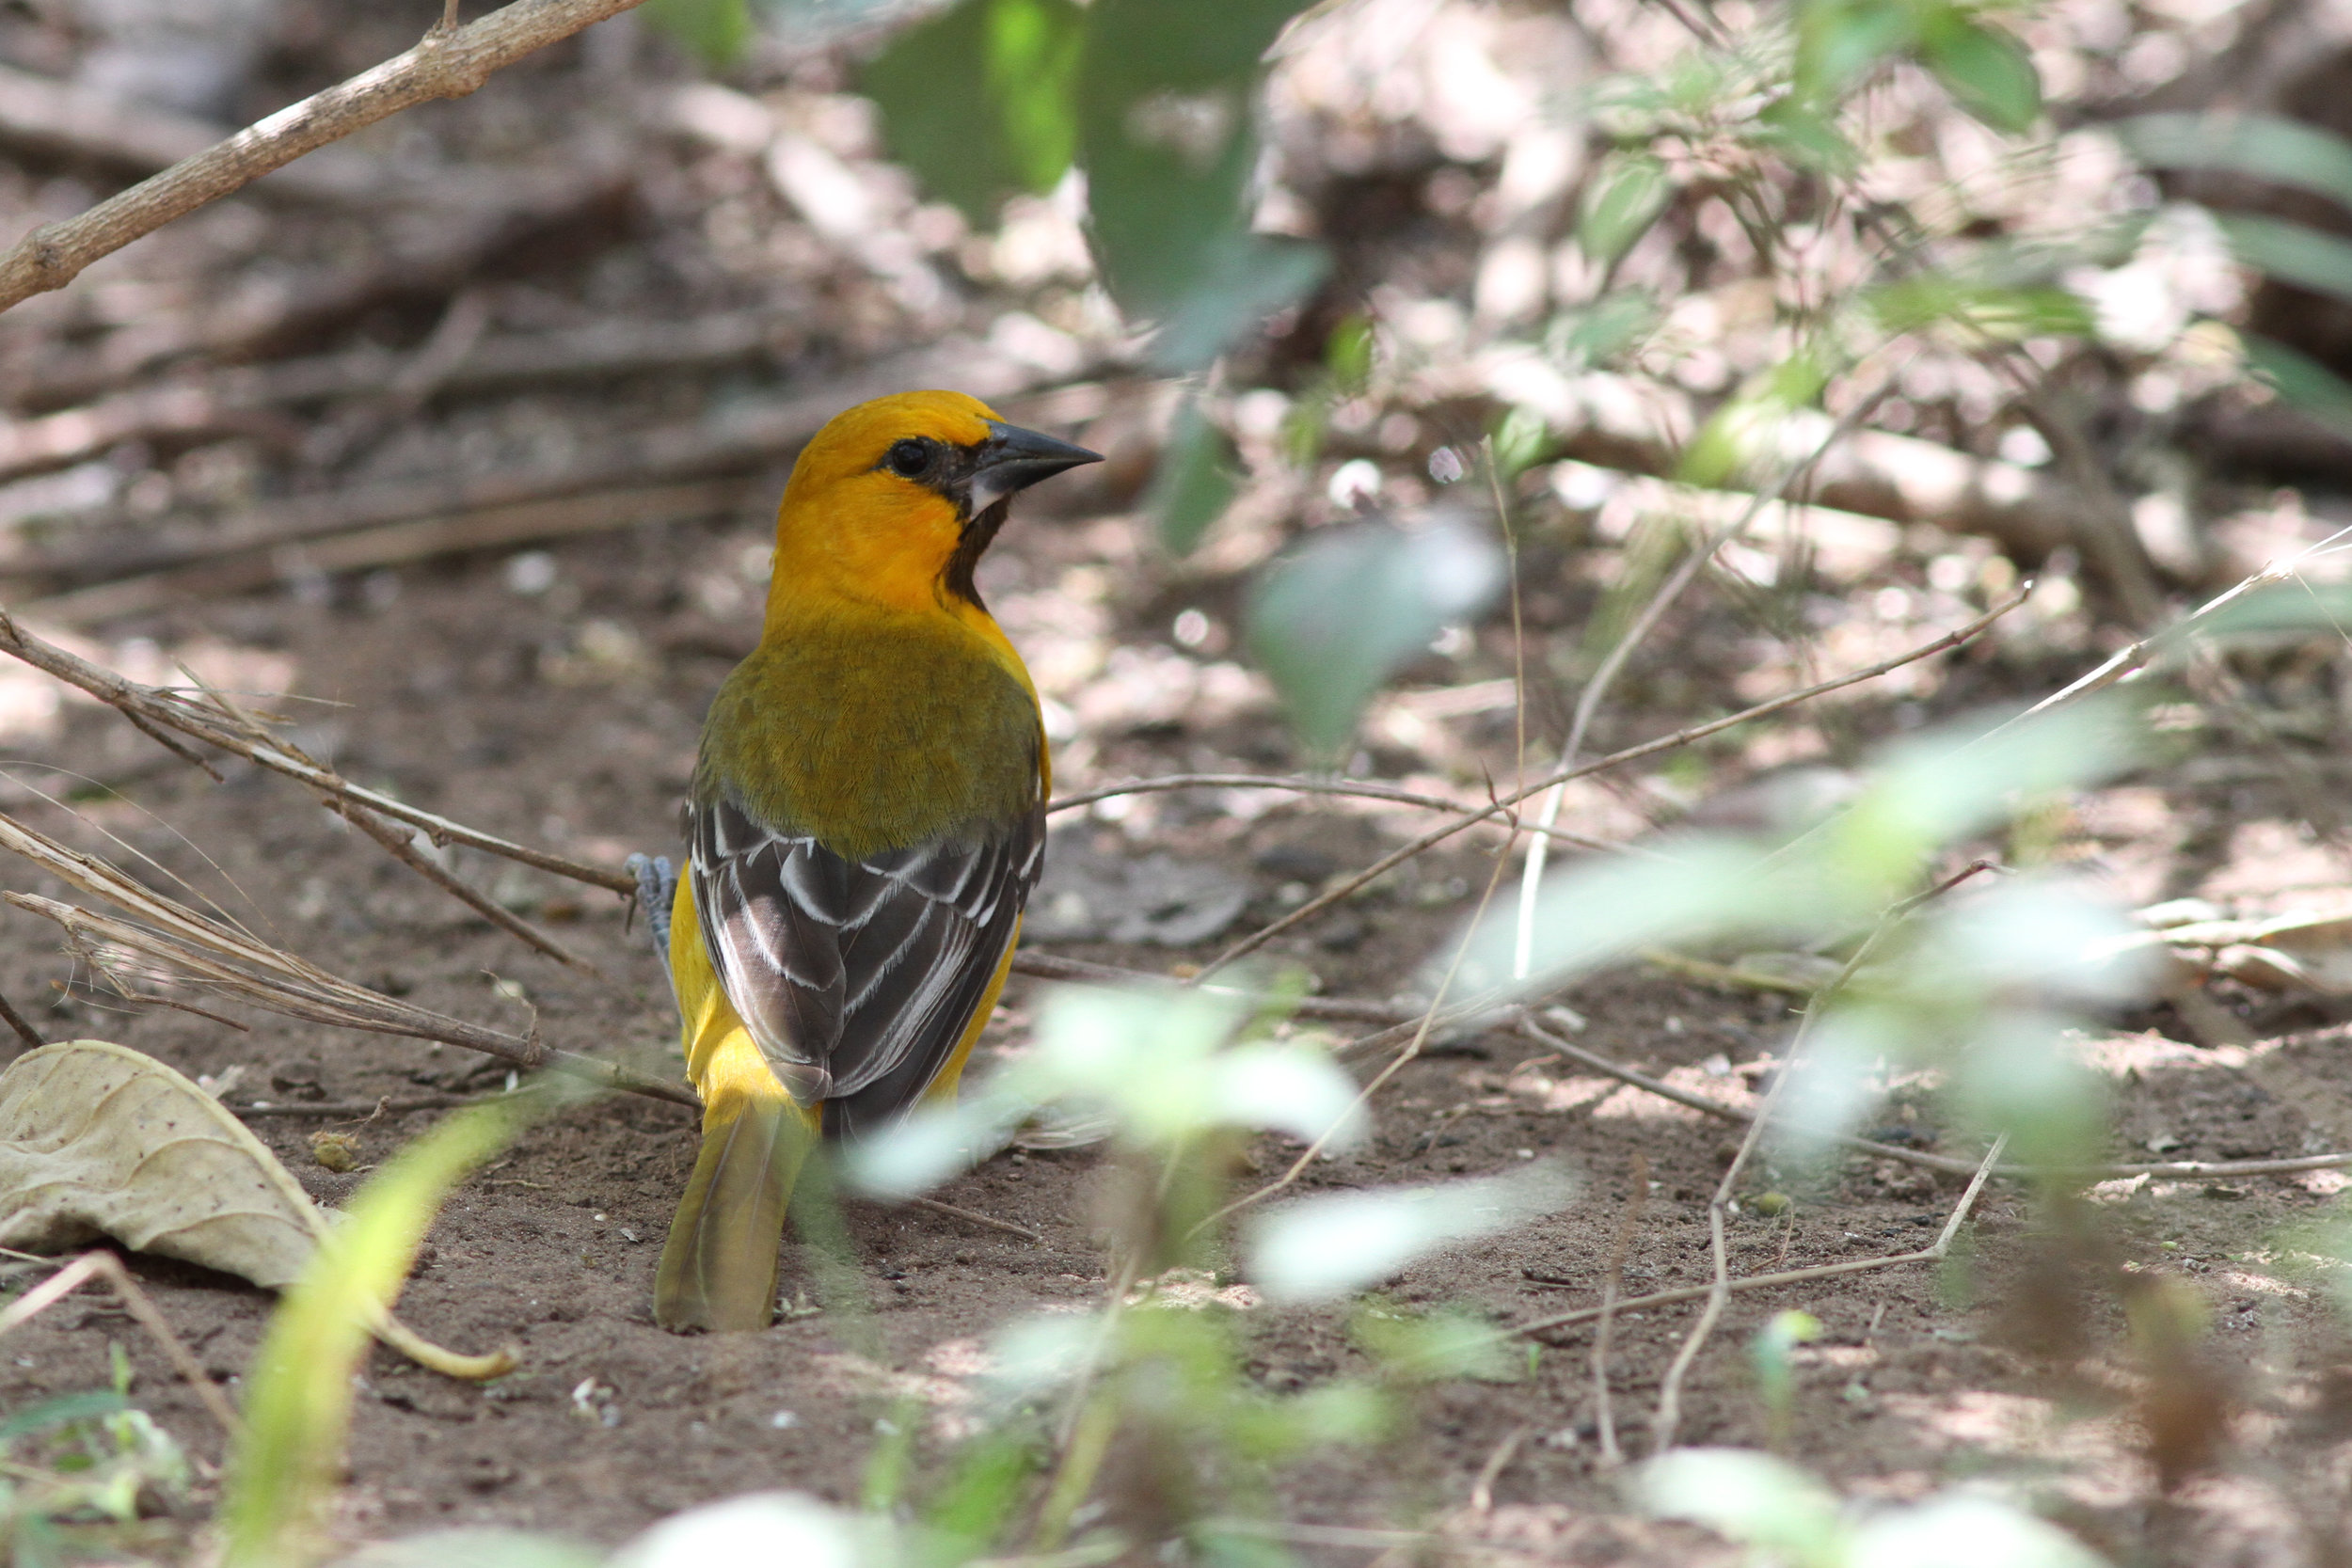 Altamira Oriole is found in the borderlands of South Texas. Photo by Nathan Goldberg.